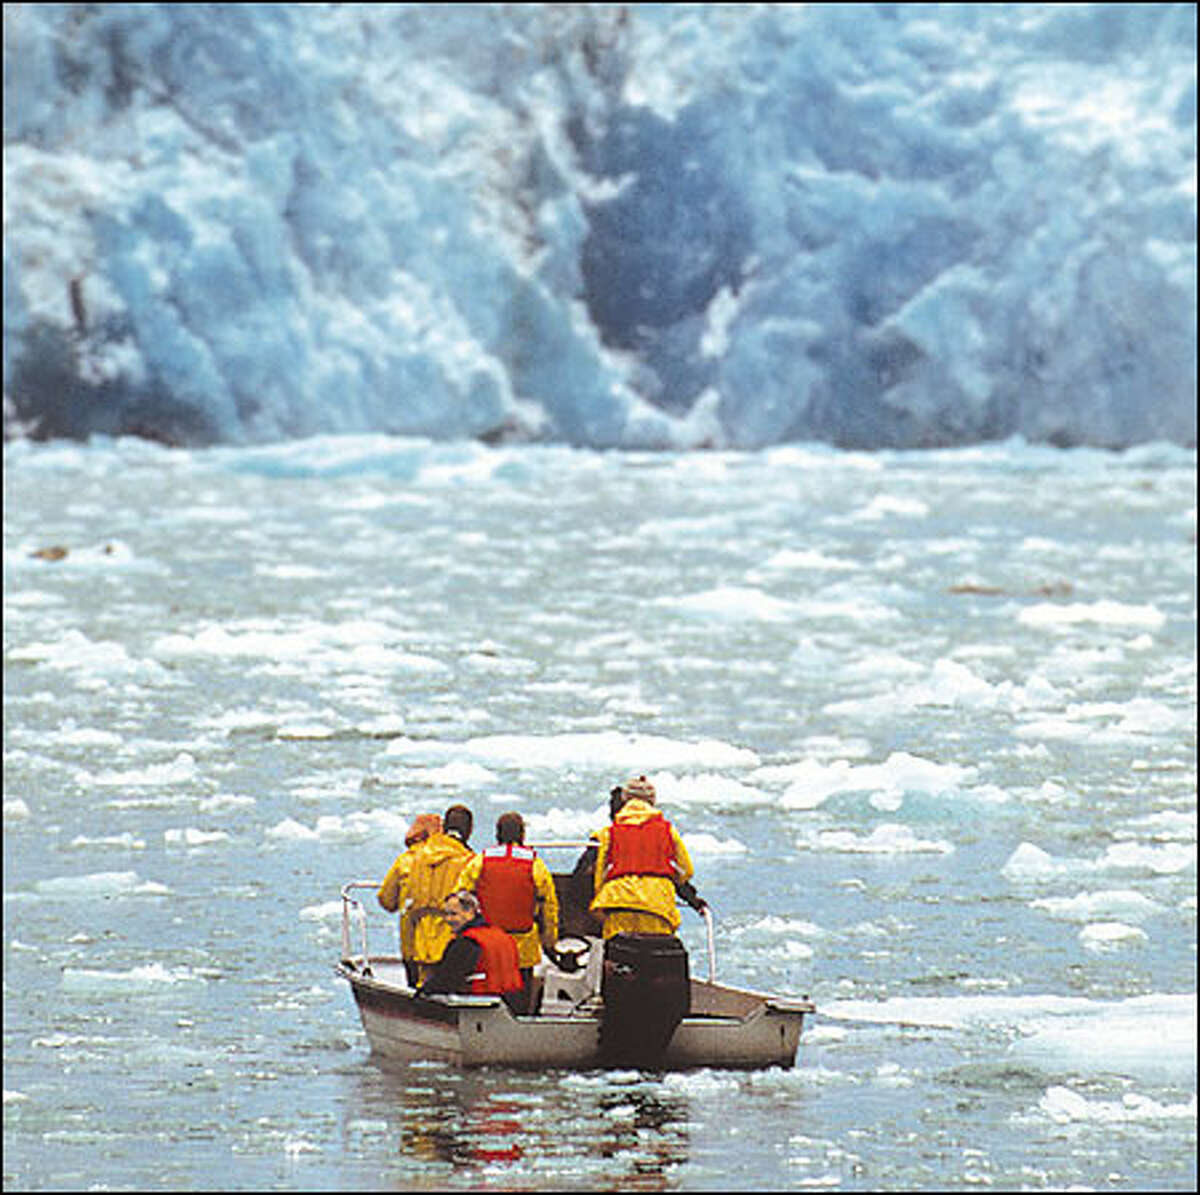 A glacier wall towers over passengers from the Safari Quest as they explore the ice-choked Tracy Arm fjord. AMERICAN SAFARI CRUISES PHOTO